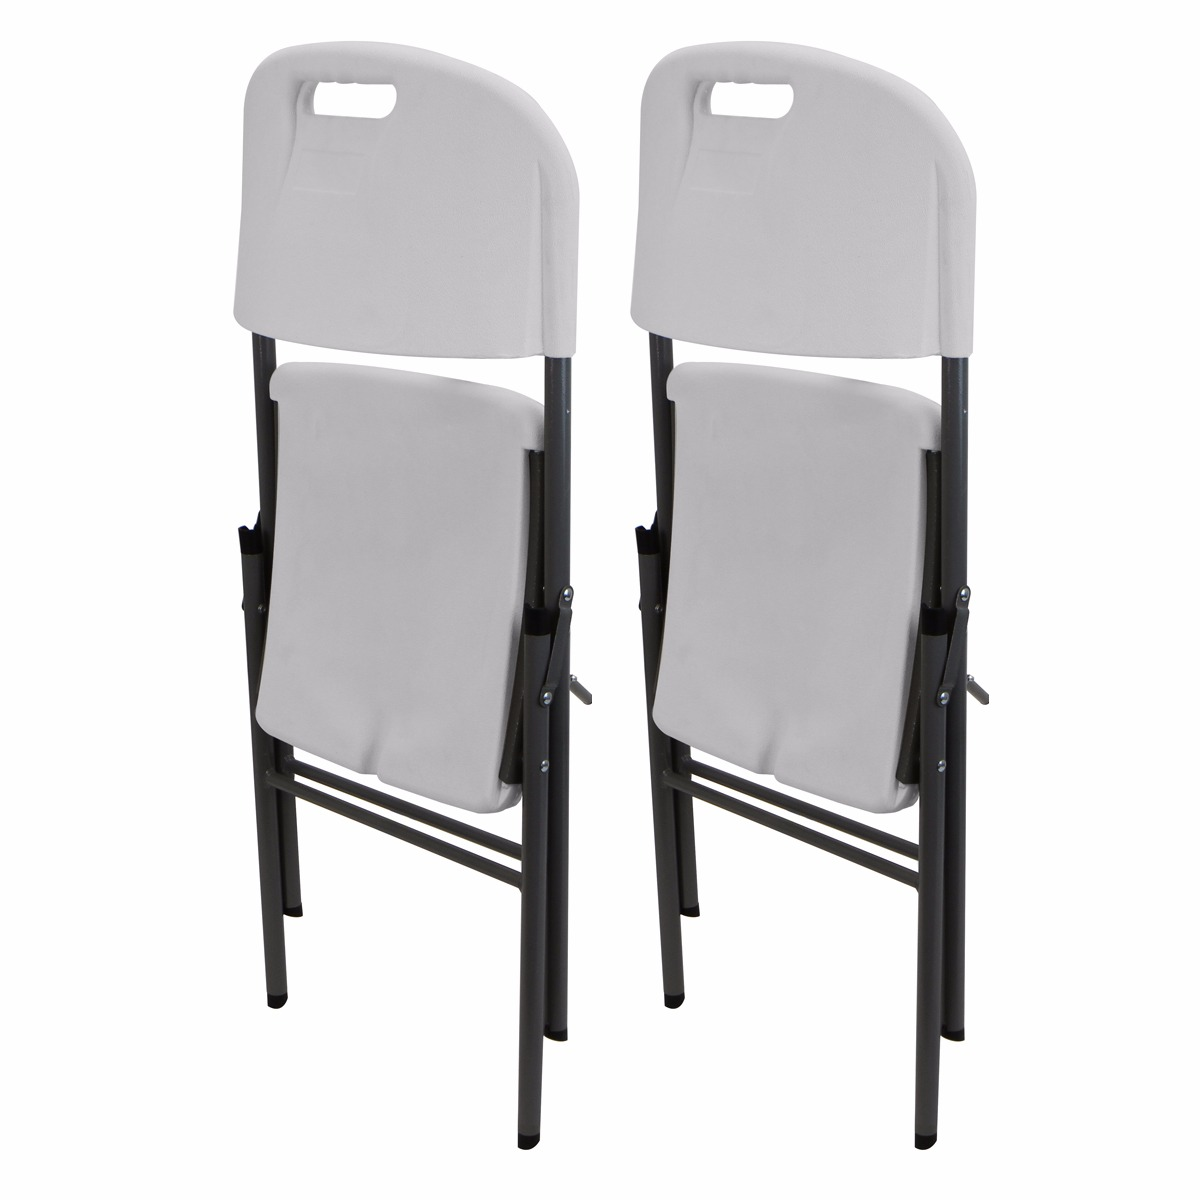 portable high chair walmart spindle leg 2pc plastic folding all weather party, white - walmart.com